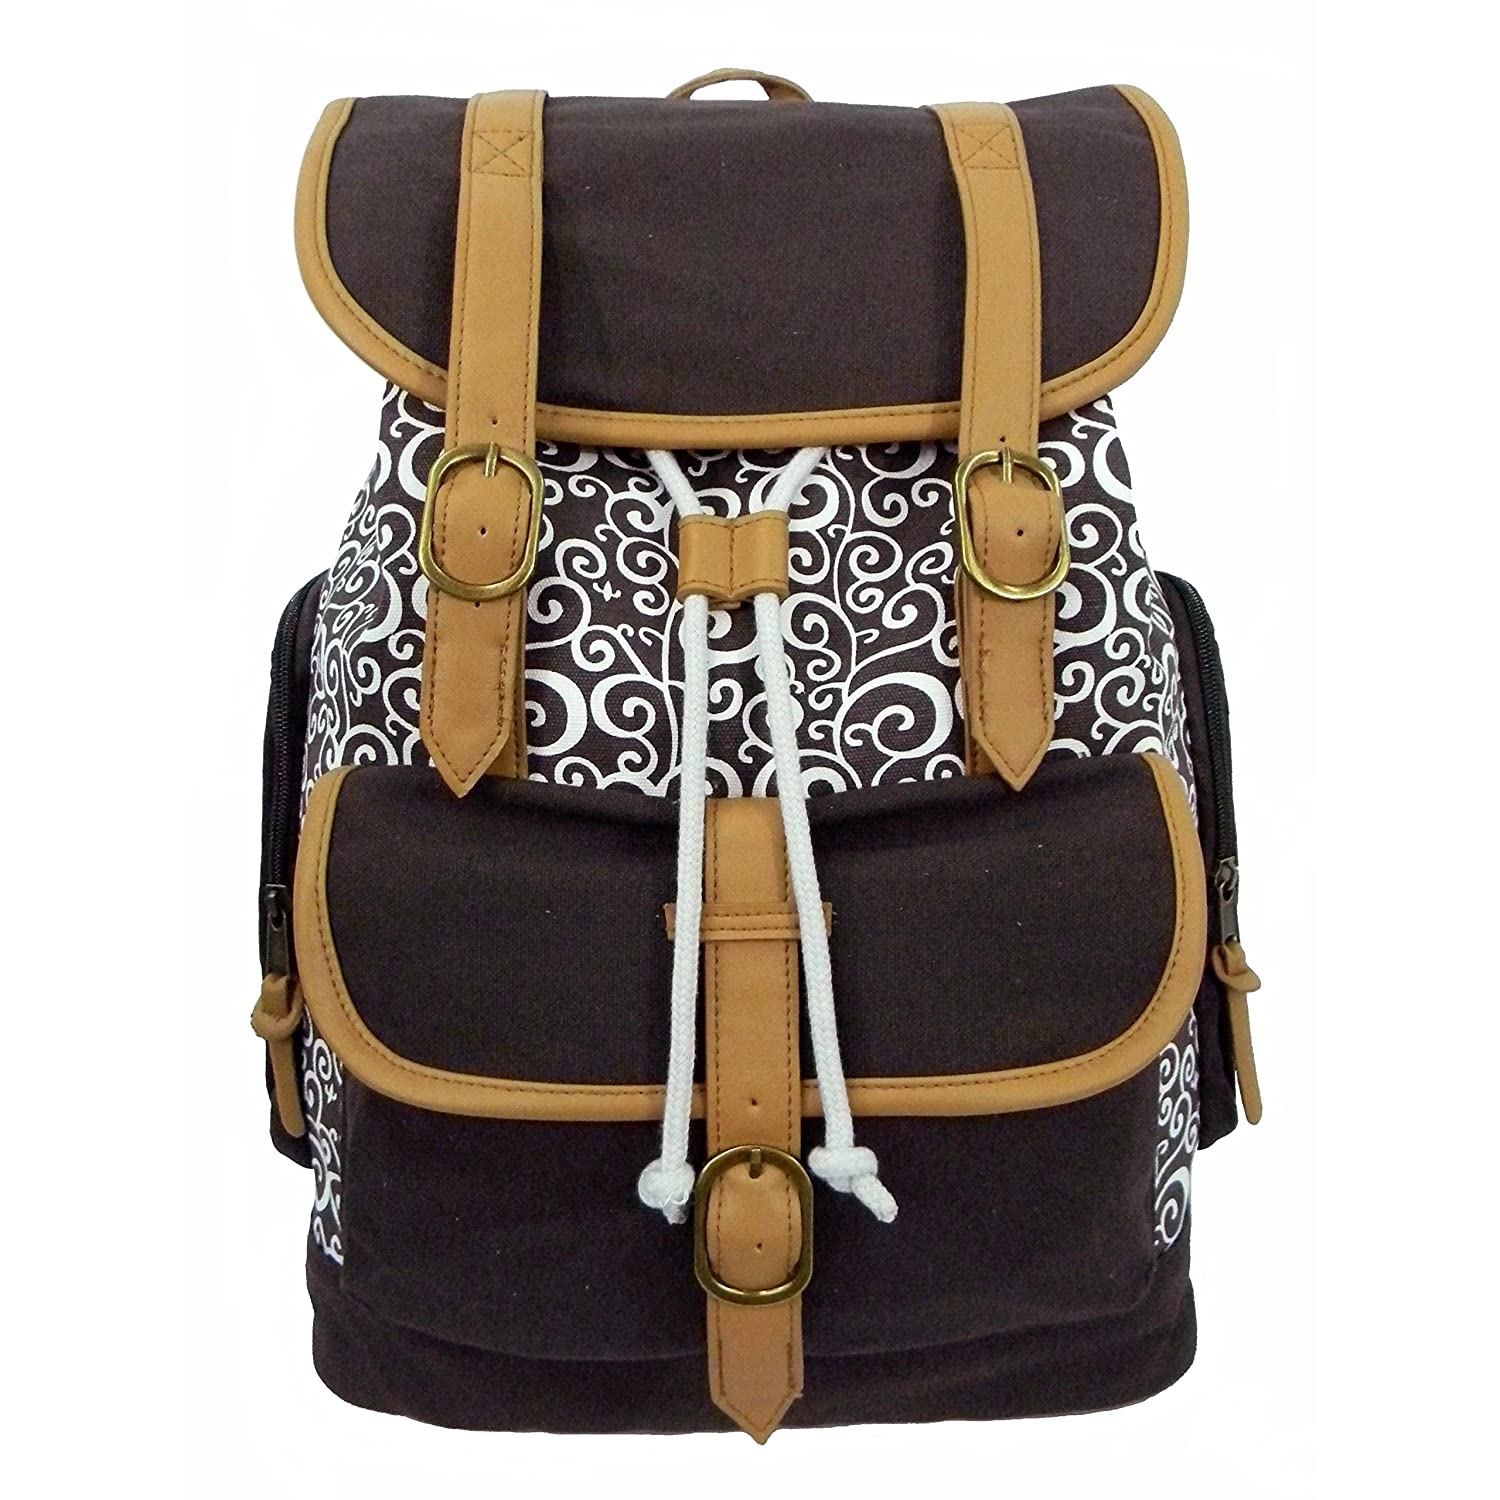 free shipping K-Cliffs Canvas Laptop Book-Bag Cotton Daypack Vintage Casual College Student School Bag/Backpack